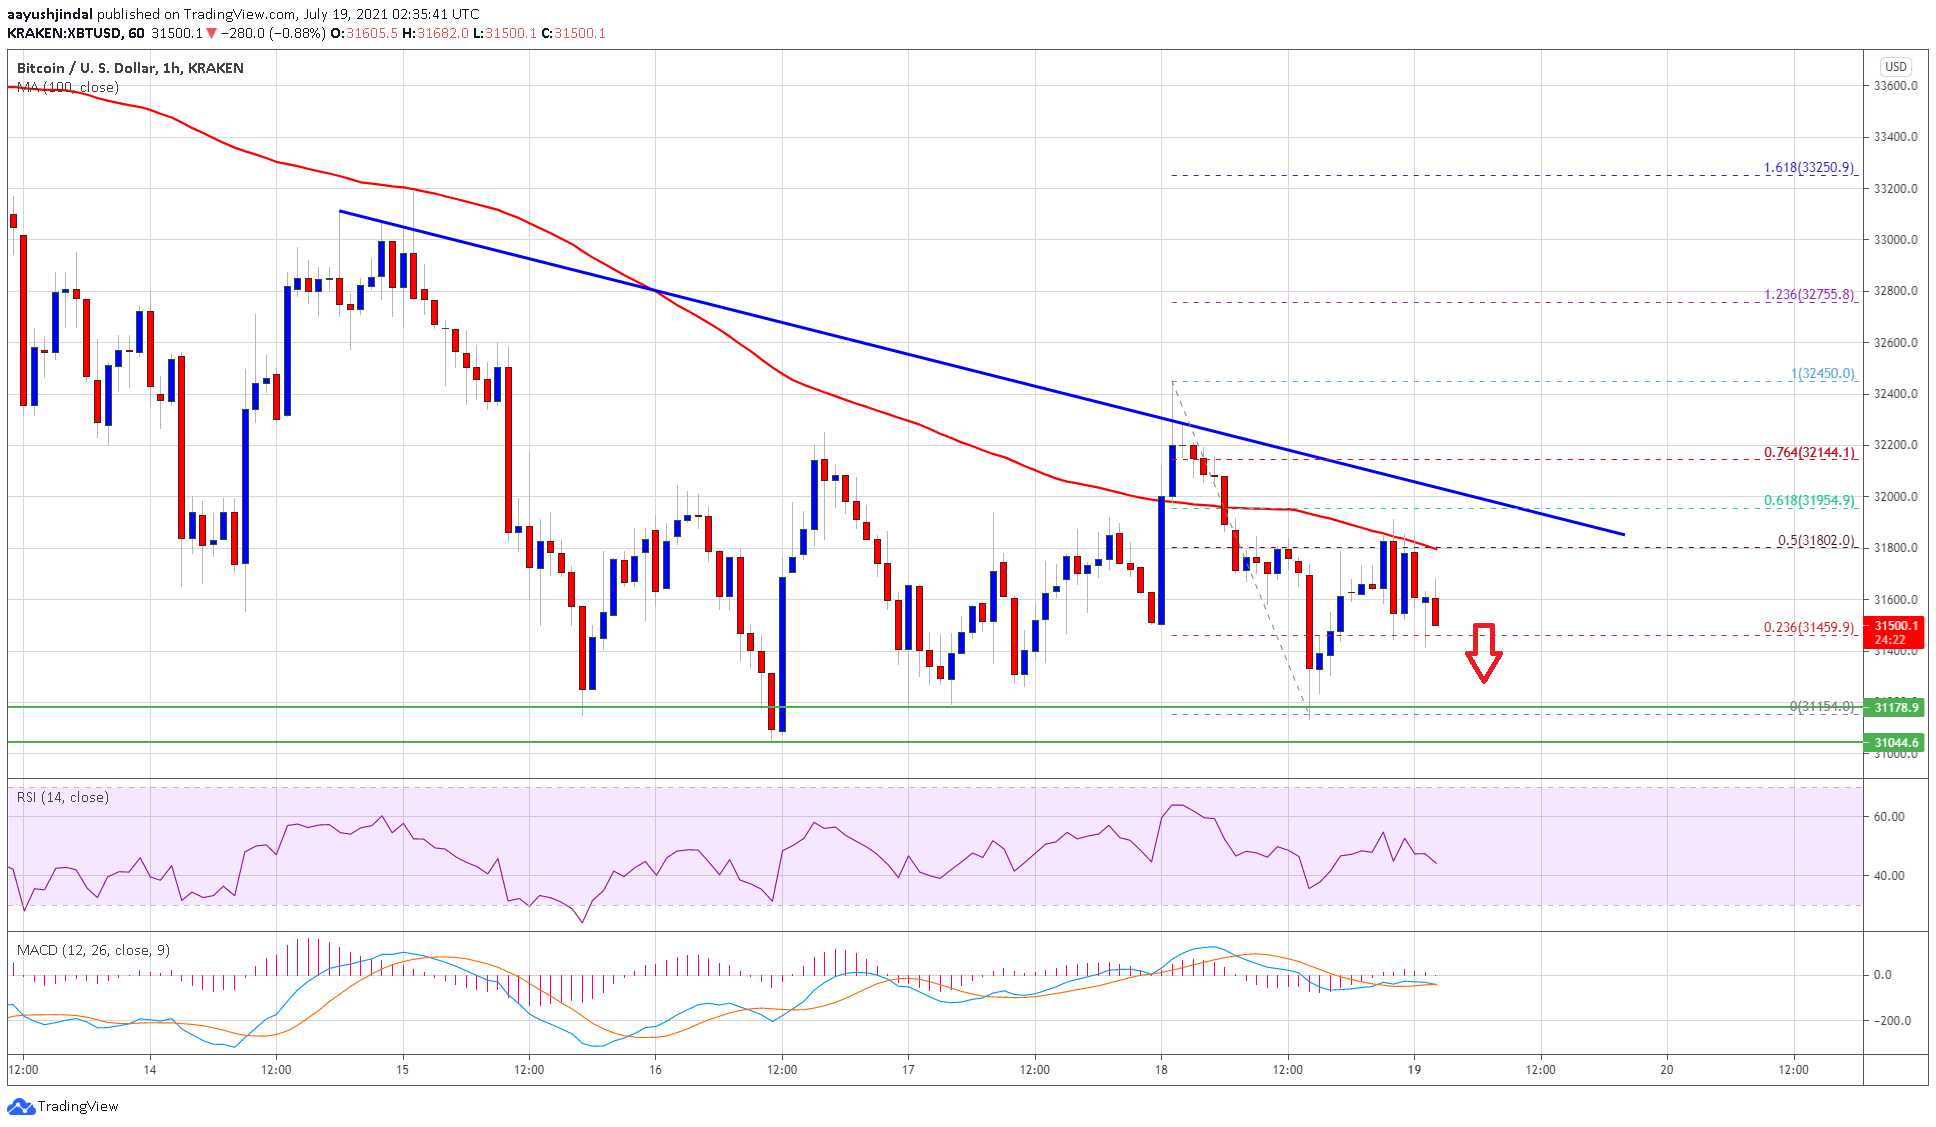 TA: Bitcoin Remains At Risk, Why BTC Could Nosedive Below $30K